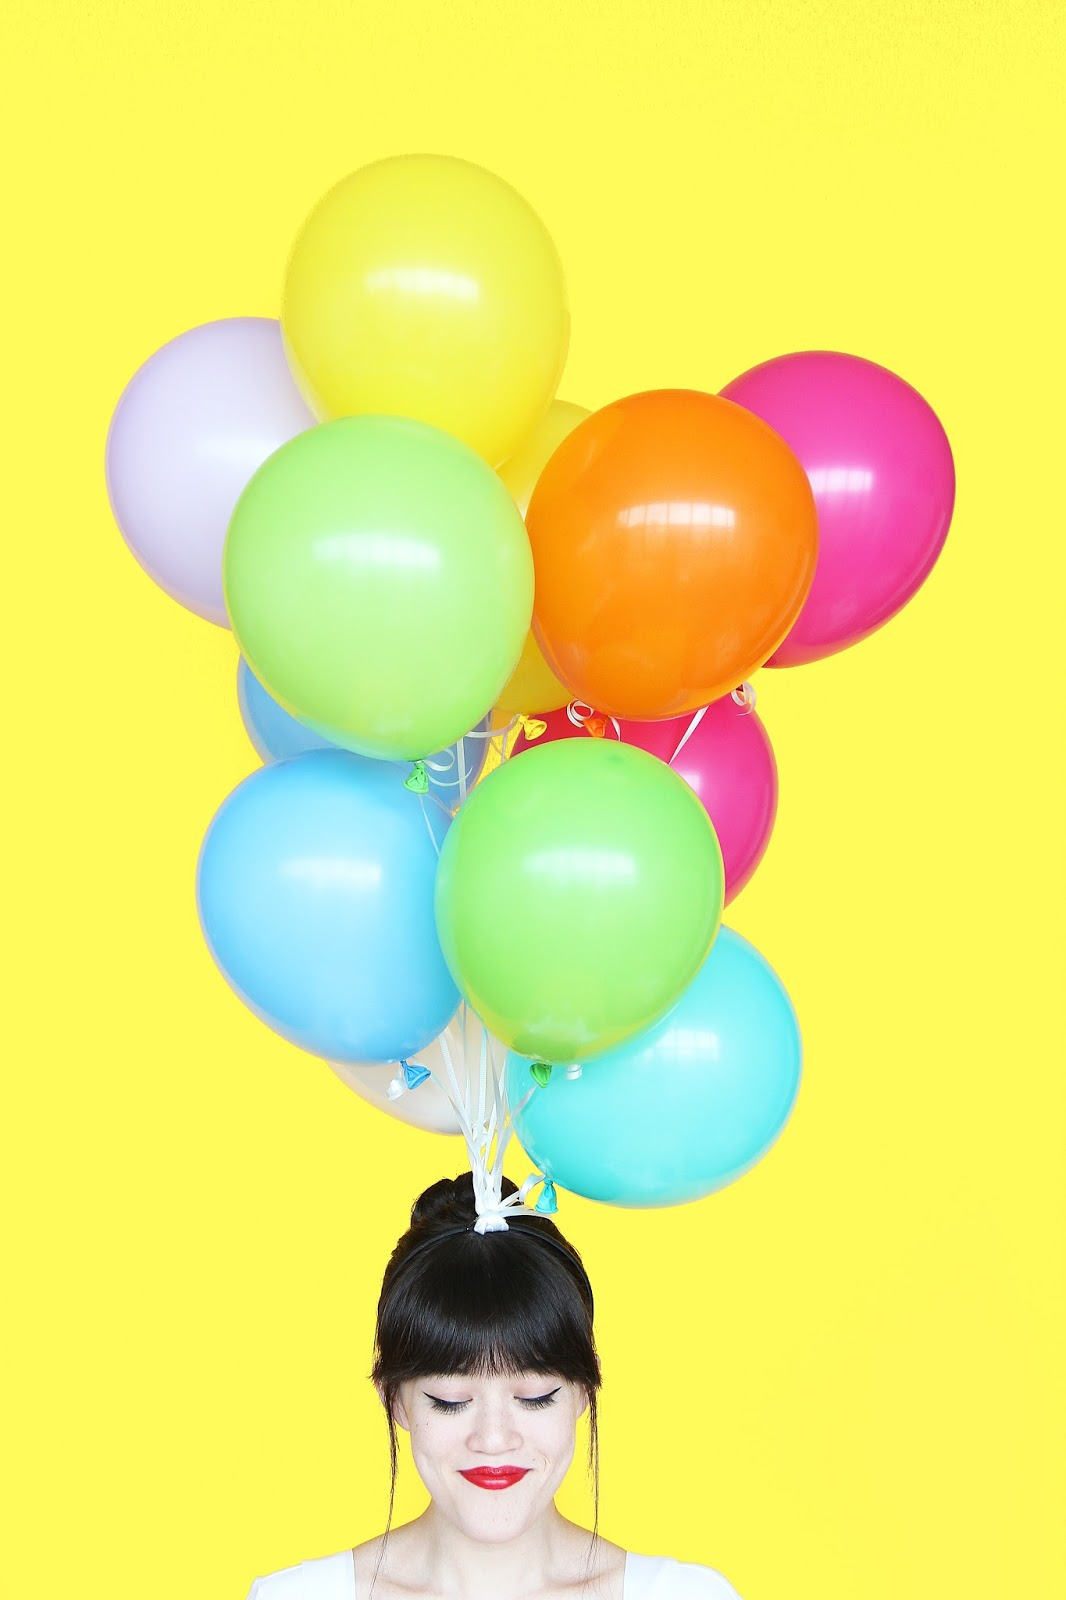 ... of balloons on your head. Thatu0027s all we really want in a Halloween costume right?! Hope youu0027re just as crazy about this as I am! Find the how-to below!  sc 1 st  Aww Sam & DIY Hot Air Balloon Halloween Costume